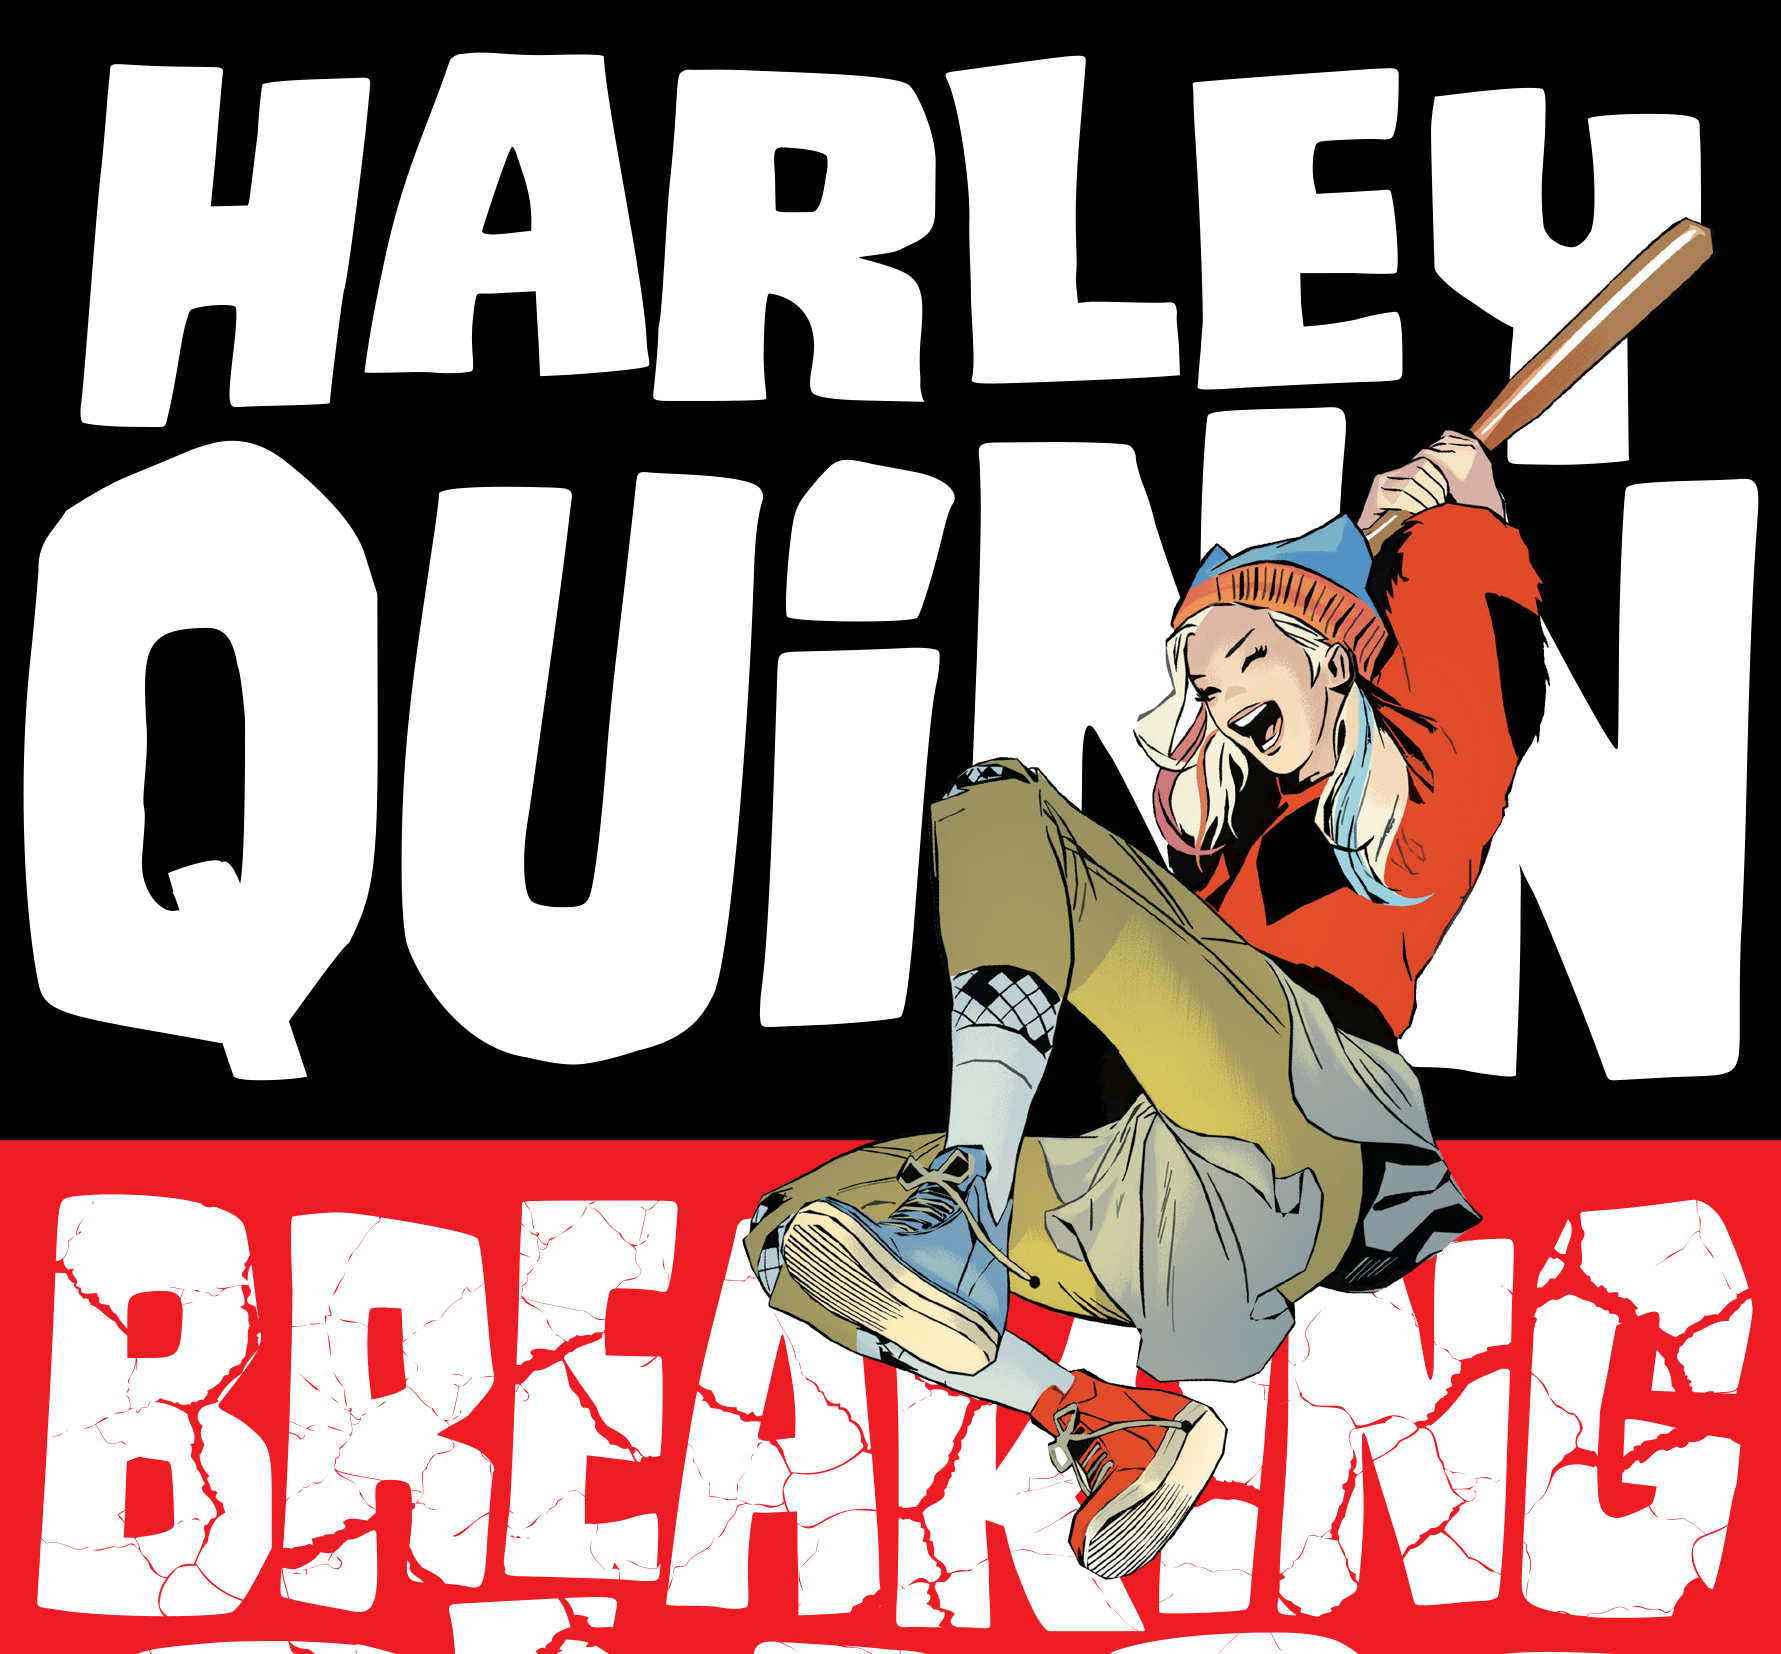 First Look: Harley Quinn: Breaking Glass young adult graphic novel gets a trailer